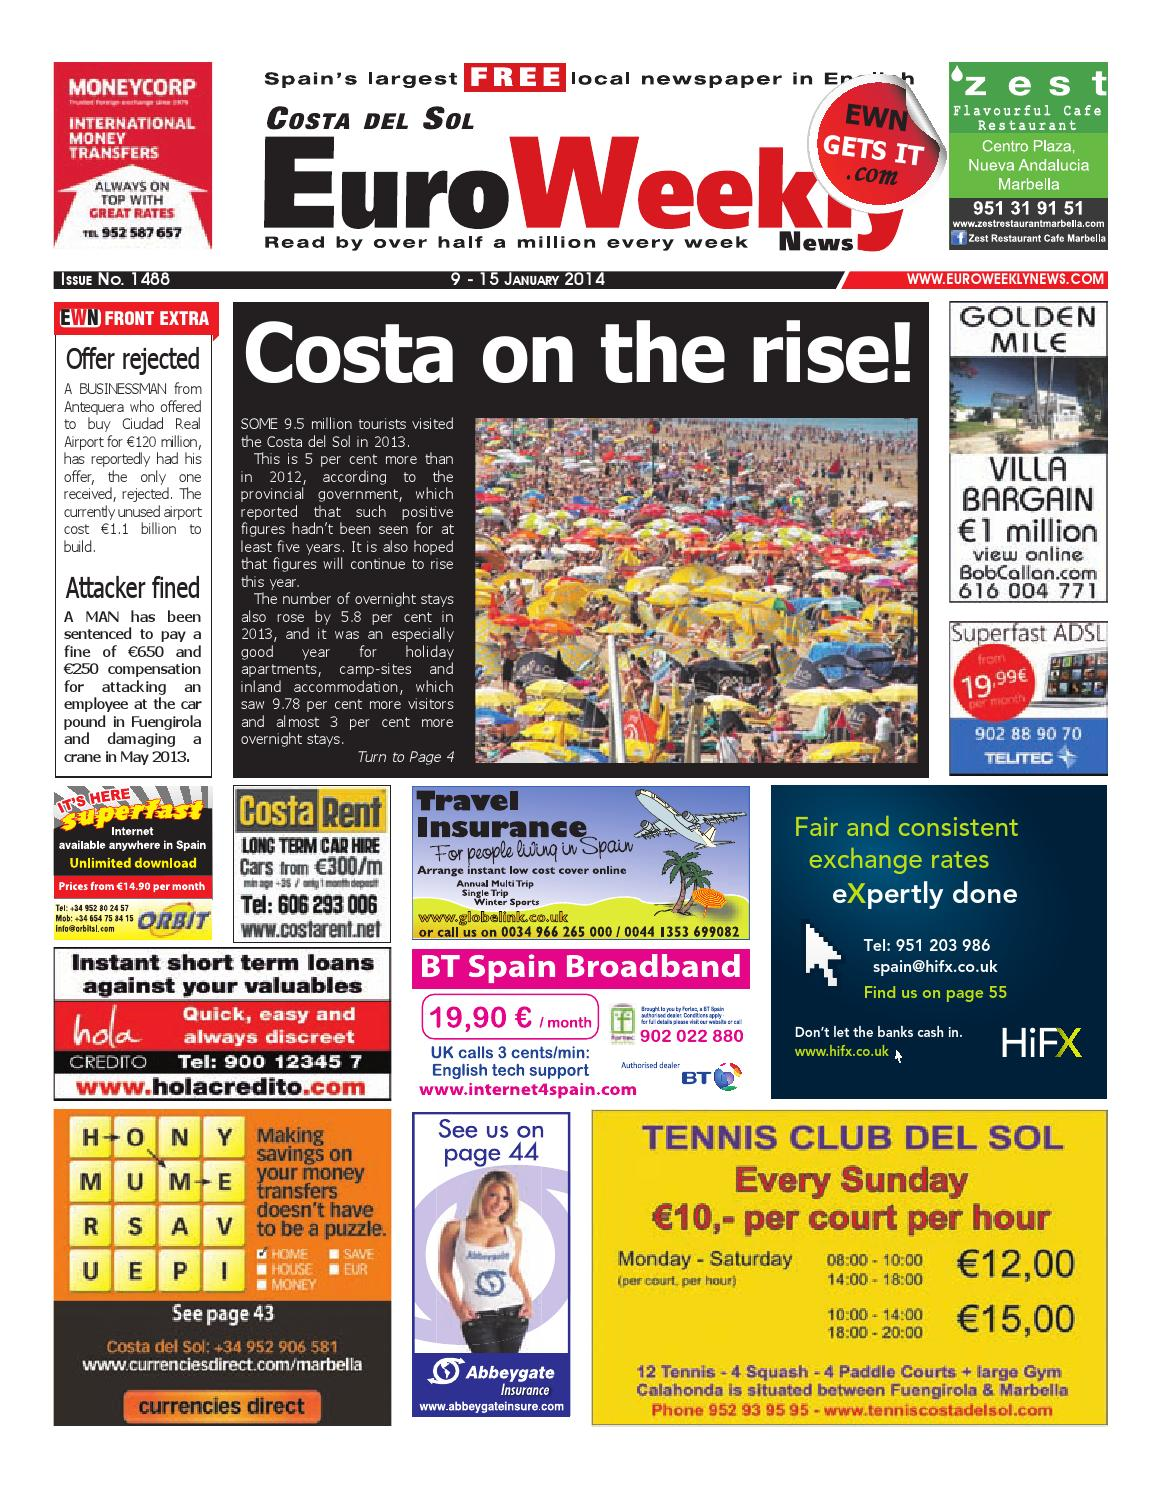 a336583080 Euro Weekly News - Costa del Sol 9 - 15 January 2014 Issue 1488 by ...